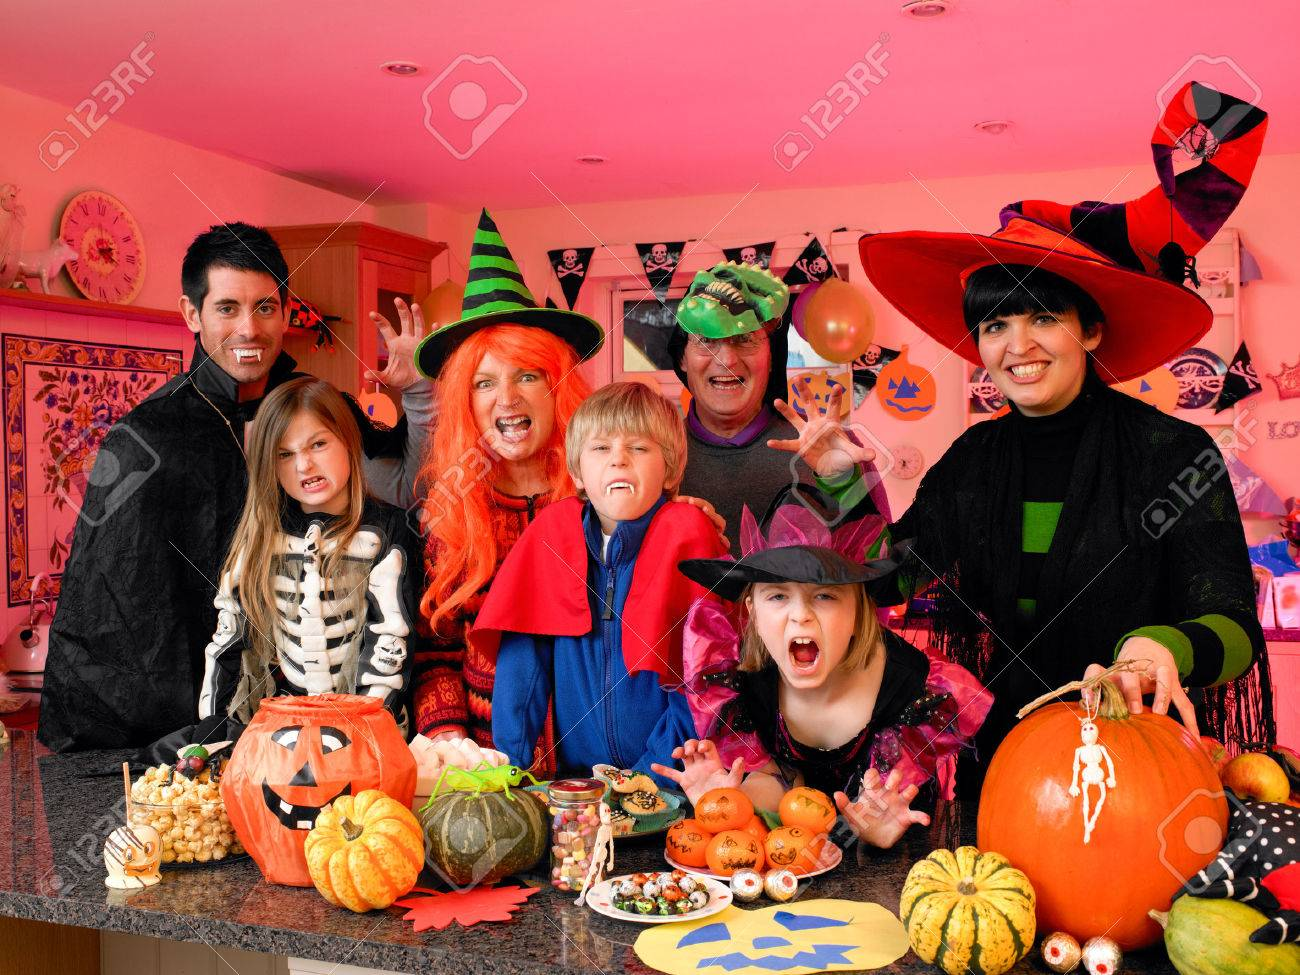 Familyfriends posing for the camera in their halloween costumes. They are standing in the kitchen with party food and treats set out in front of them. - 42278245